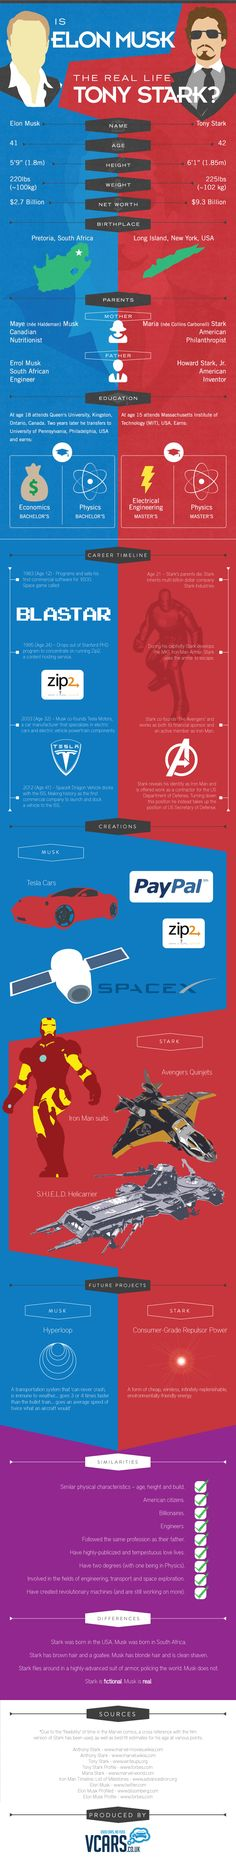 Is Elon Musk the real Ironman? Infographic